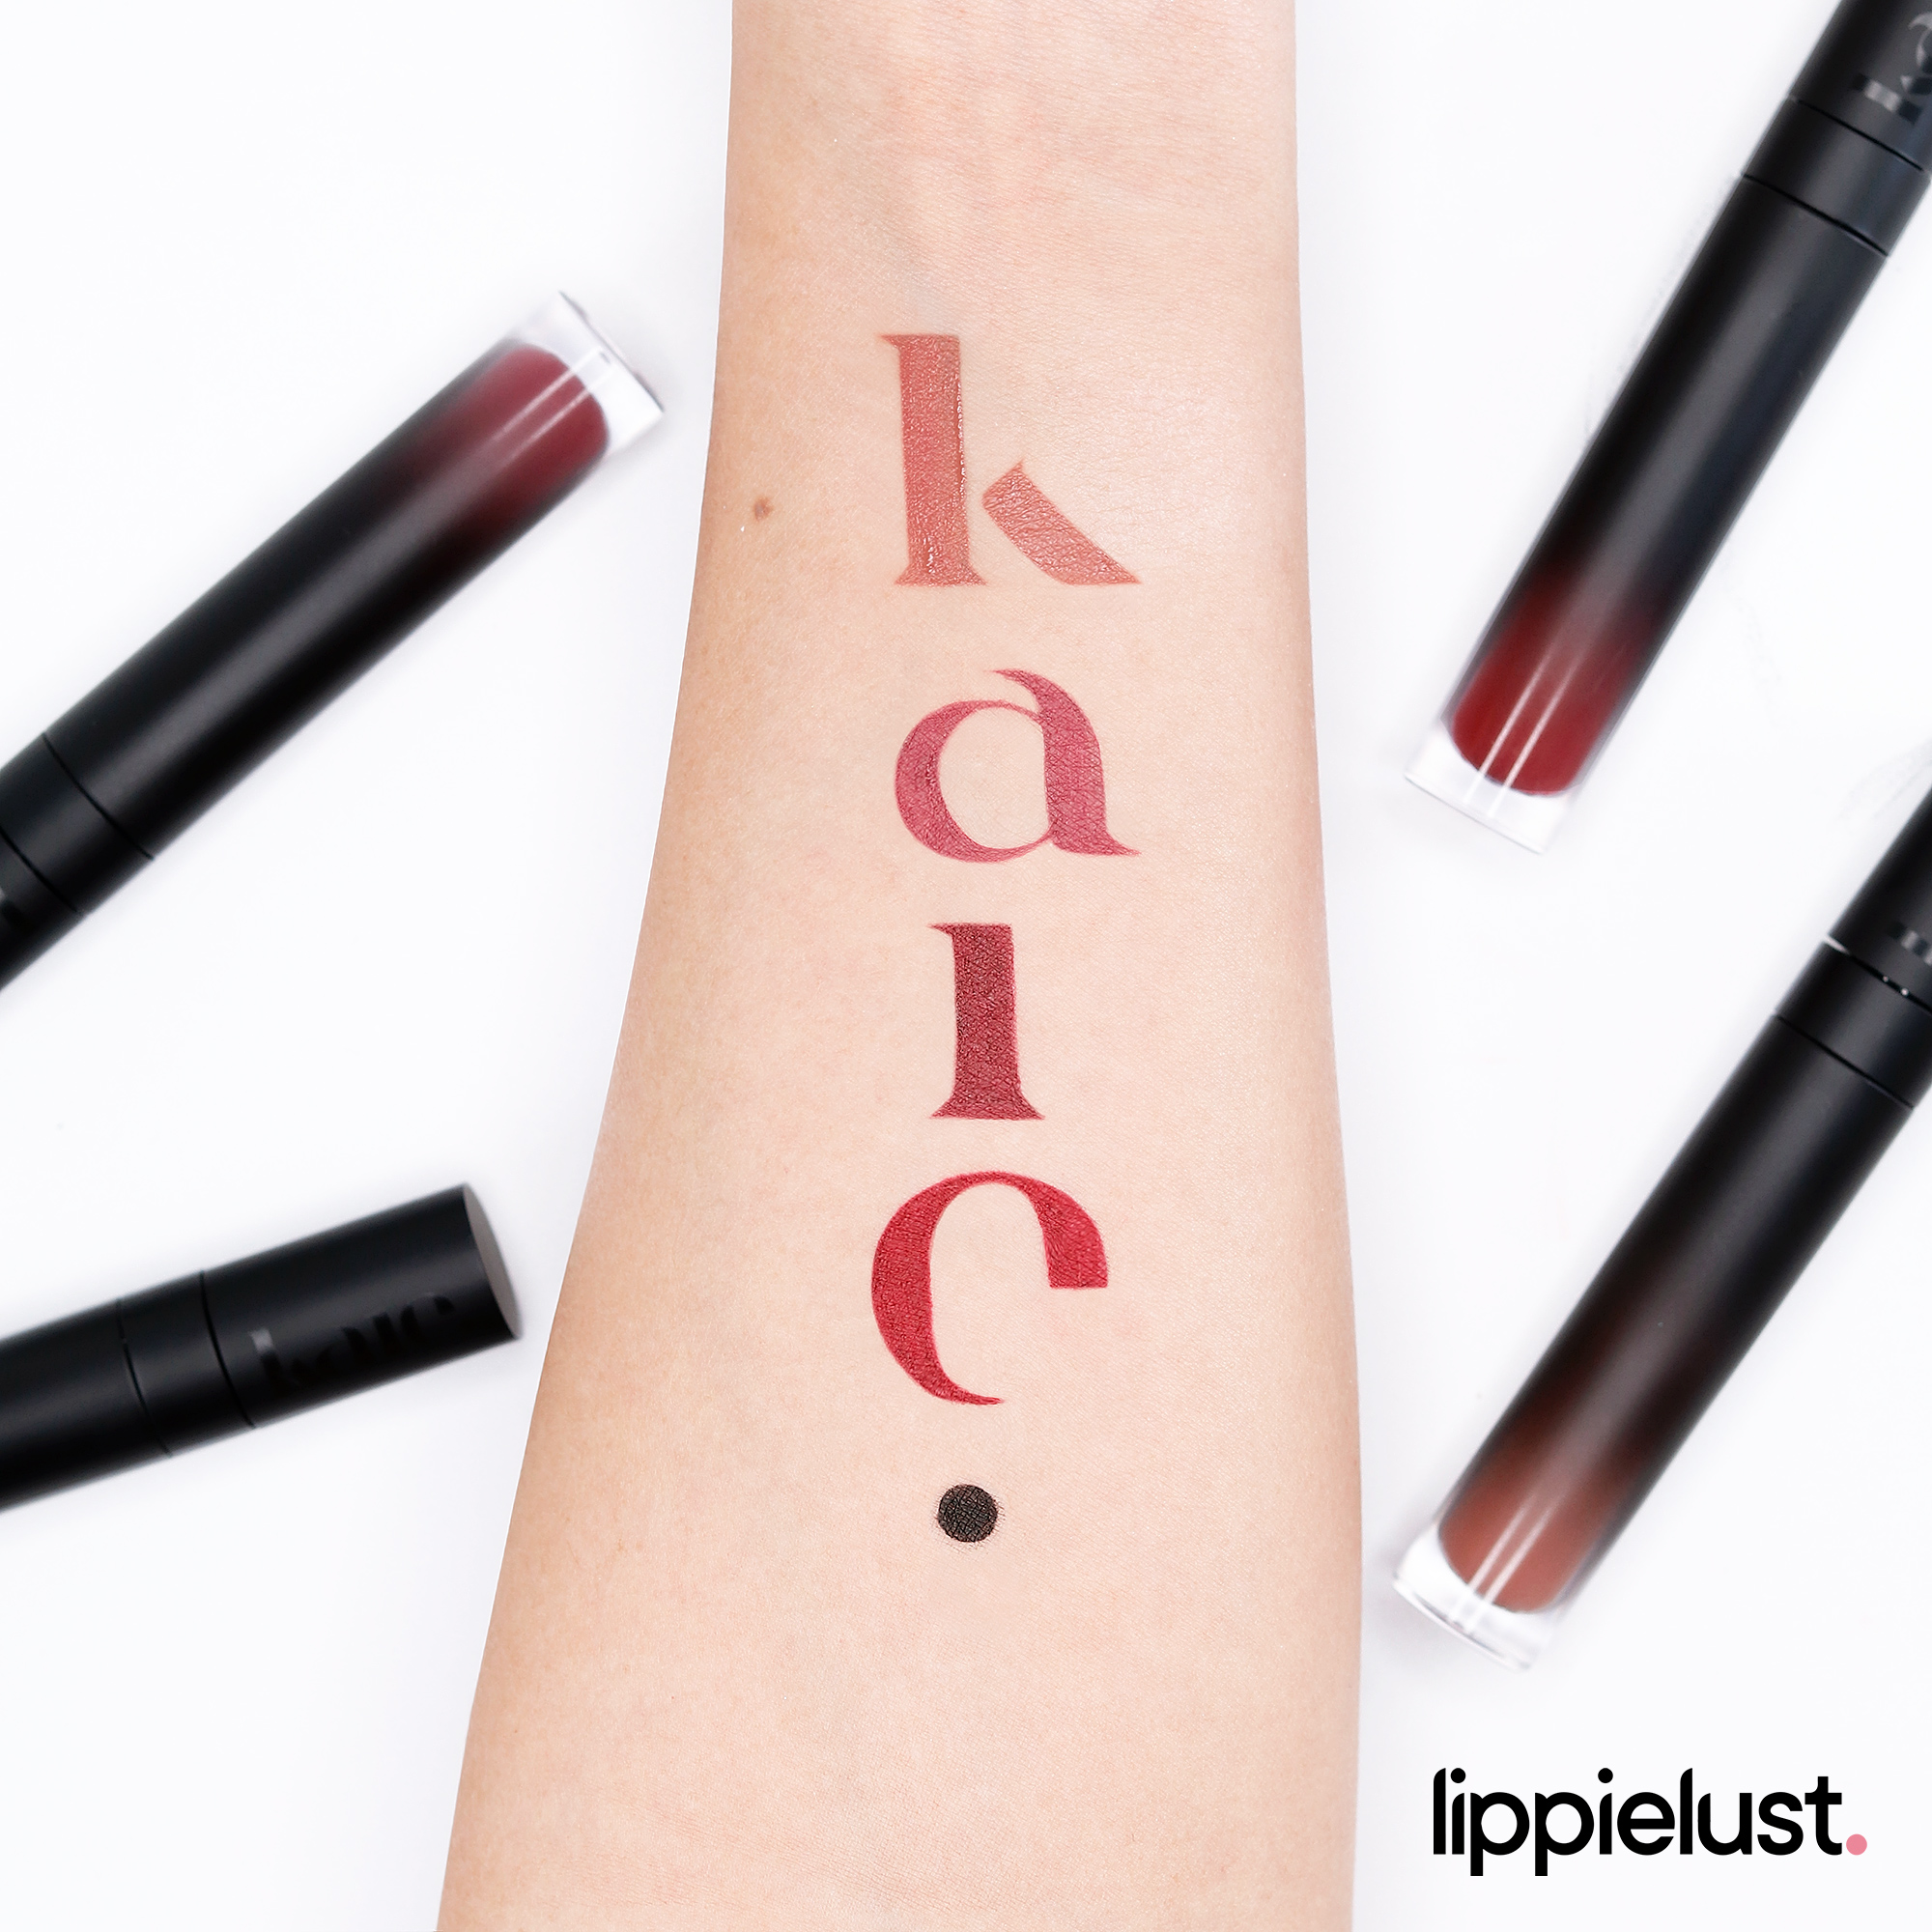 KAIE BEAUTY LIP MOUSSE & PH RESPONSIVE LIP GLOSS REVIEW